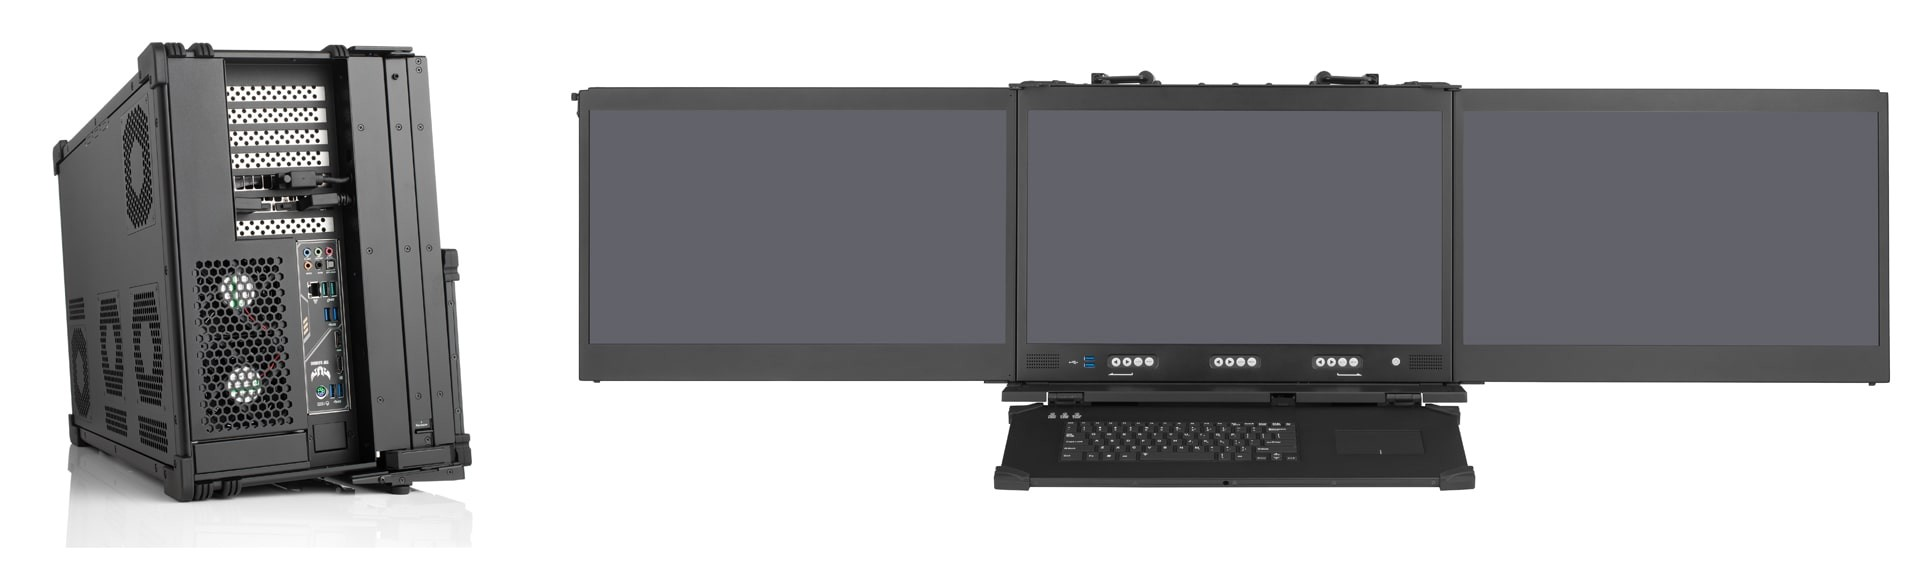 Mobile command and control center (C4ISR)